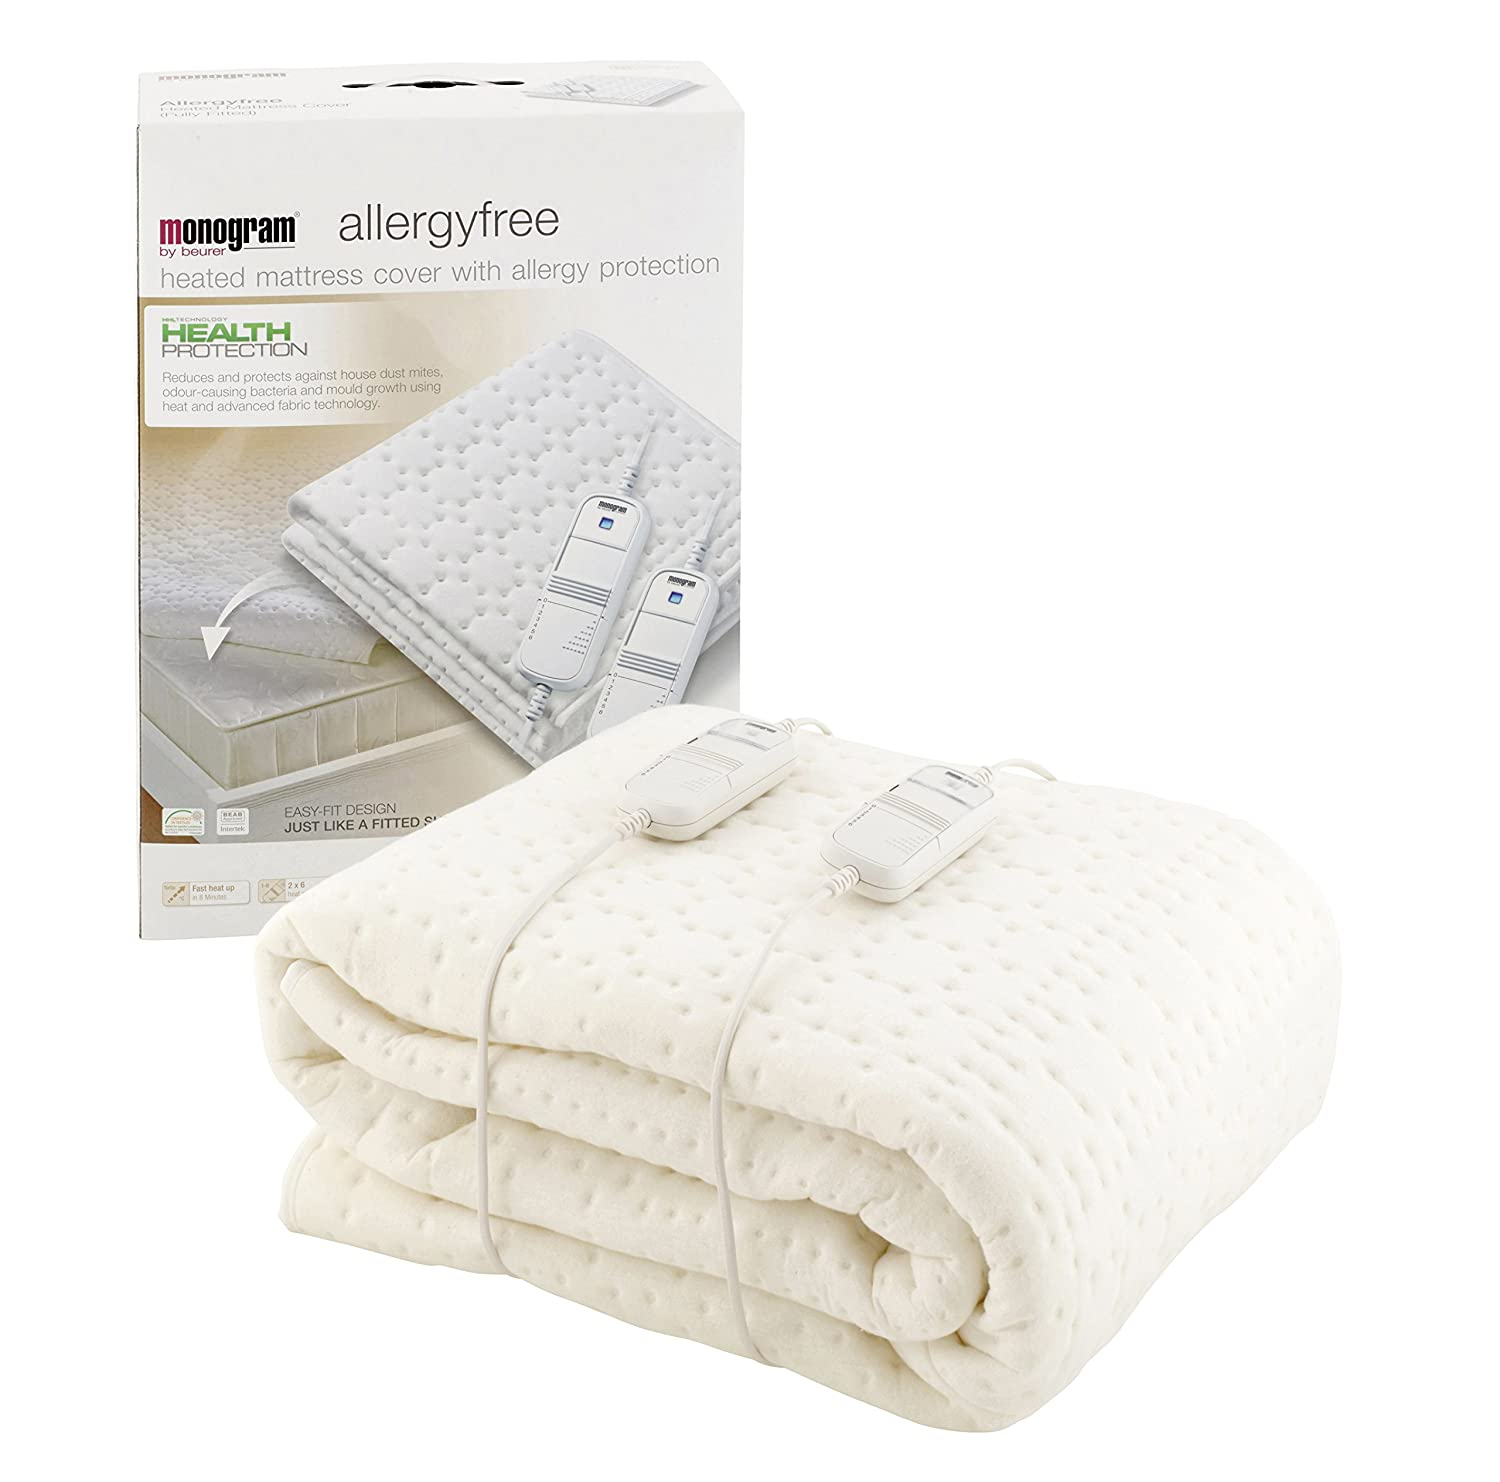 organic s cotton click cov certified box quilted sleeplikeabear mattress zipper wool baffle image to enlarge cover product